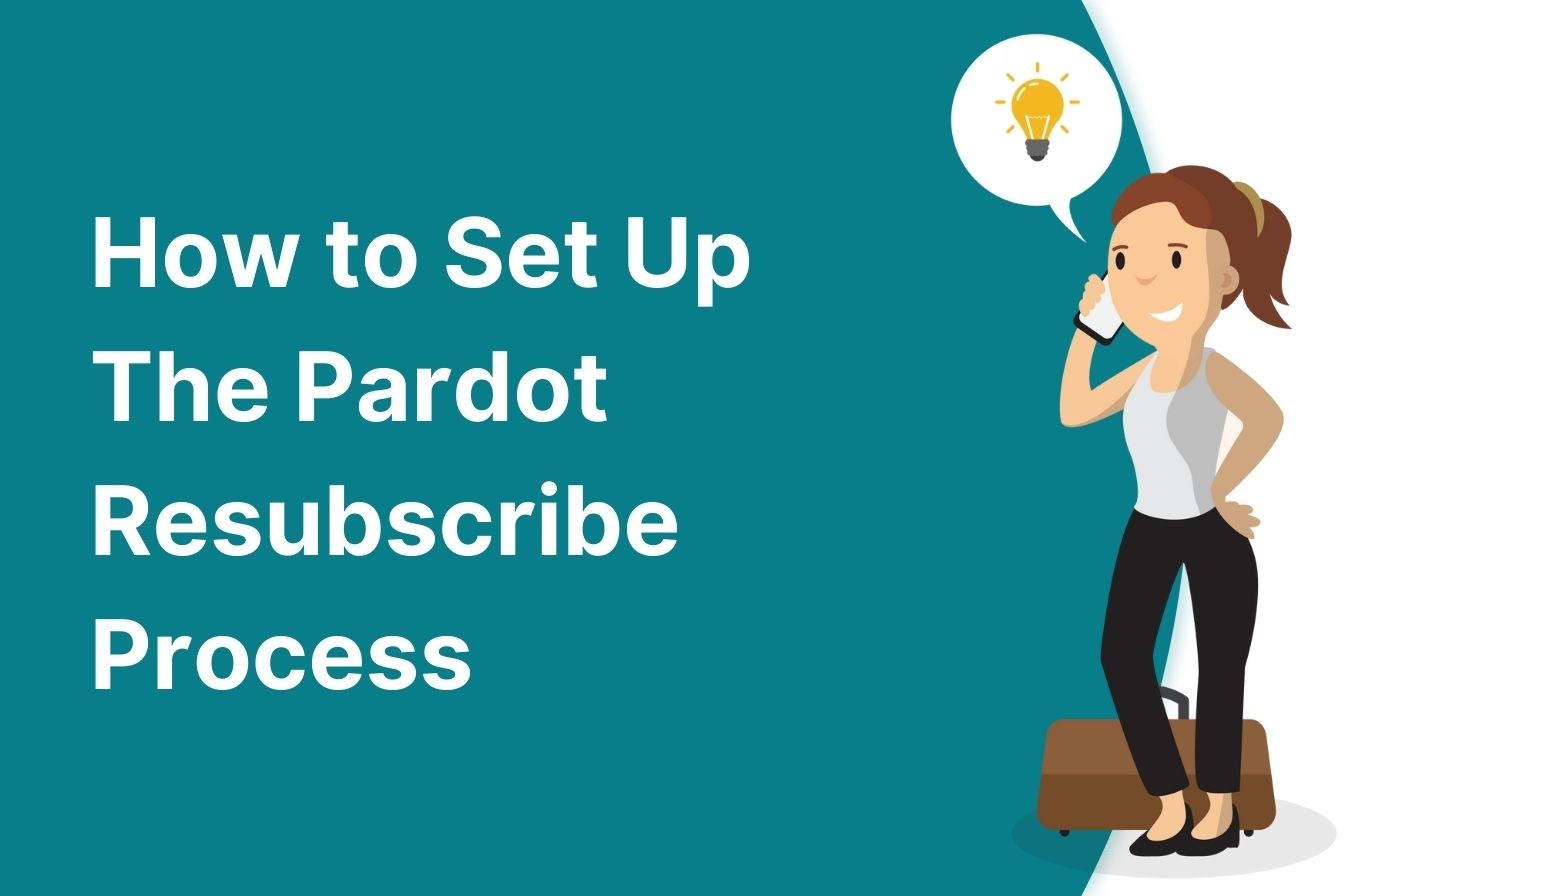 Feature image: How to set up the Pardot resubscribe process